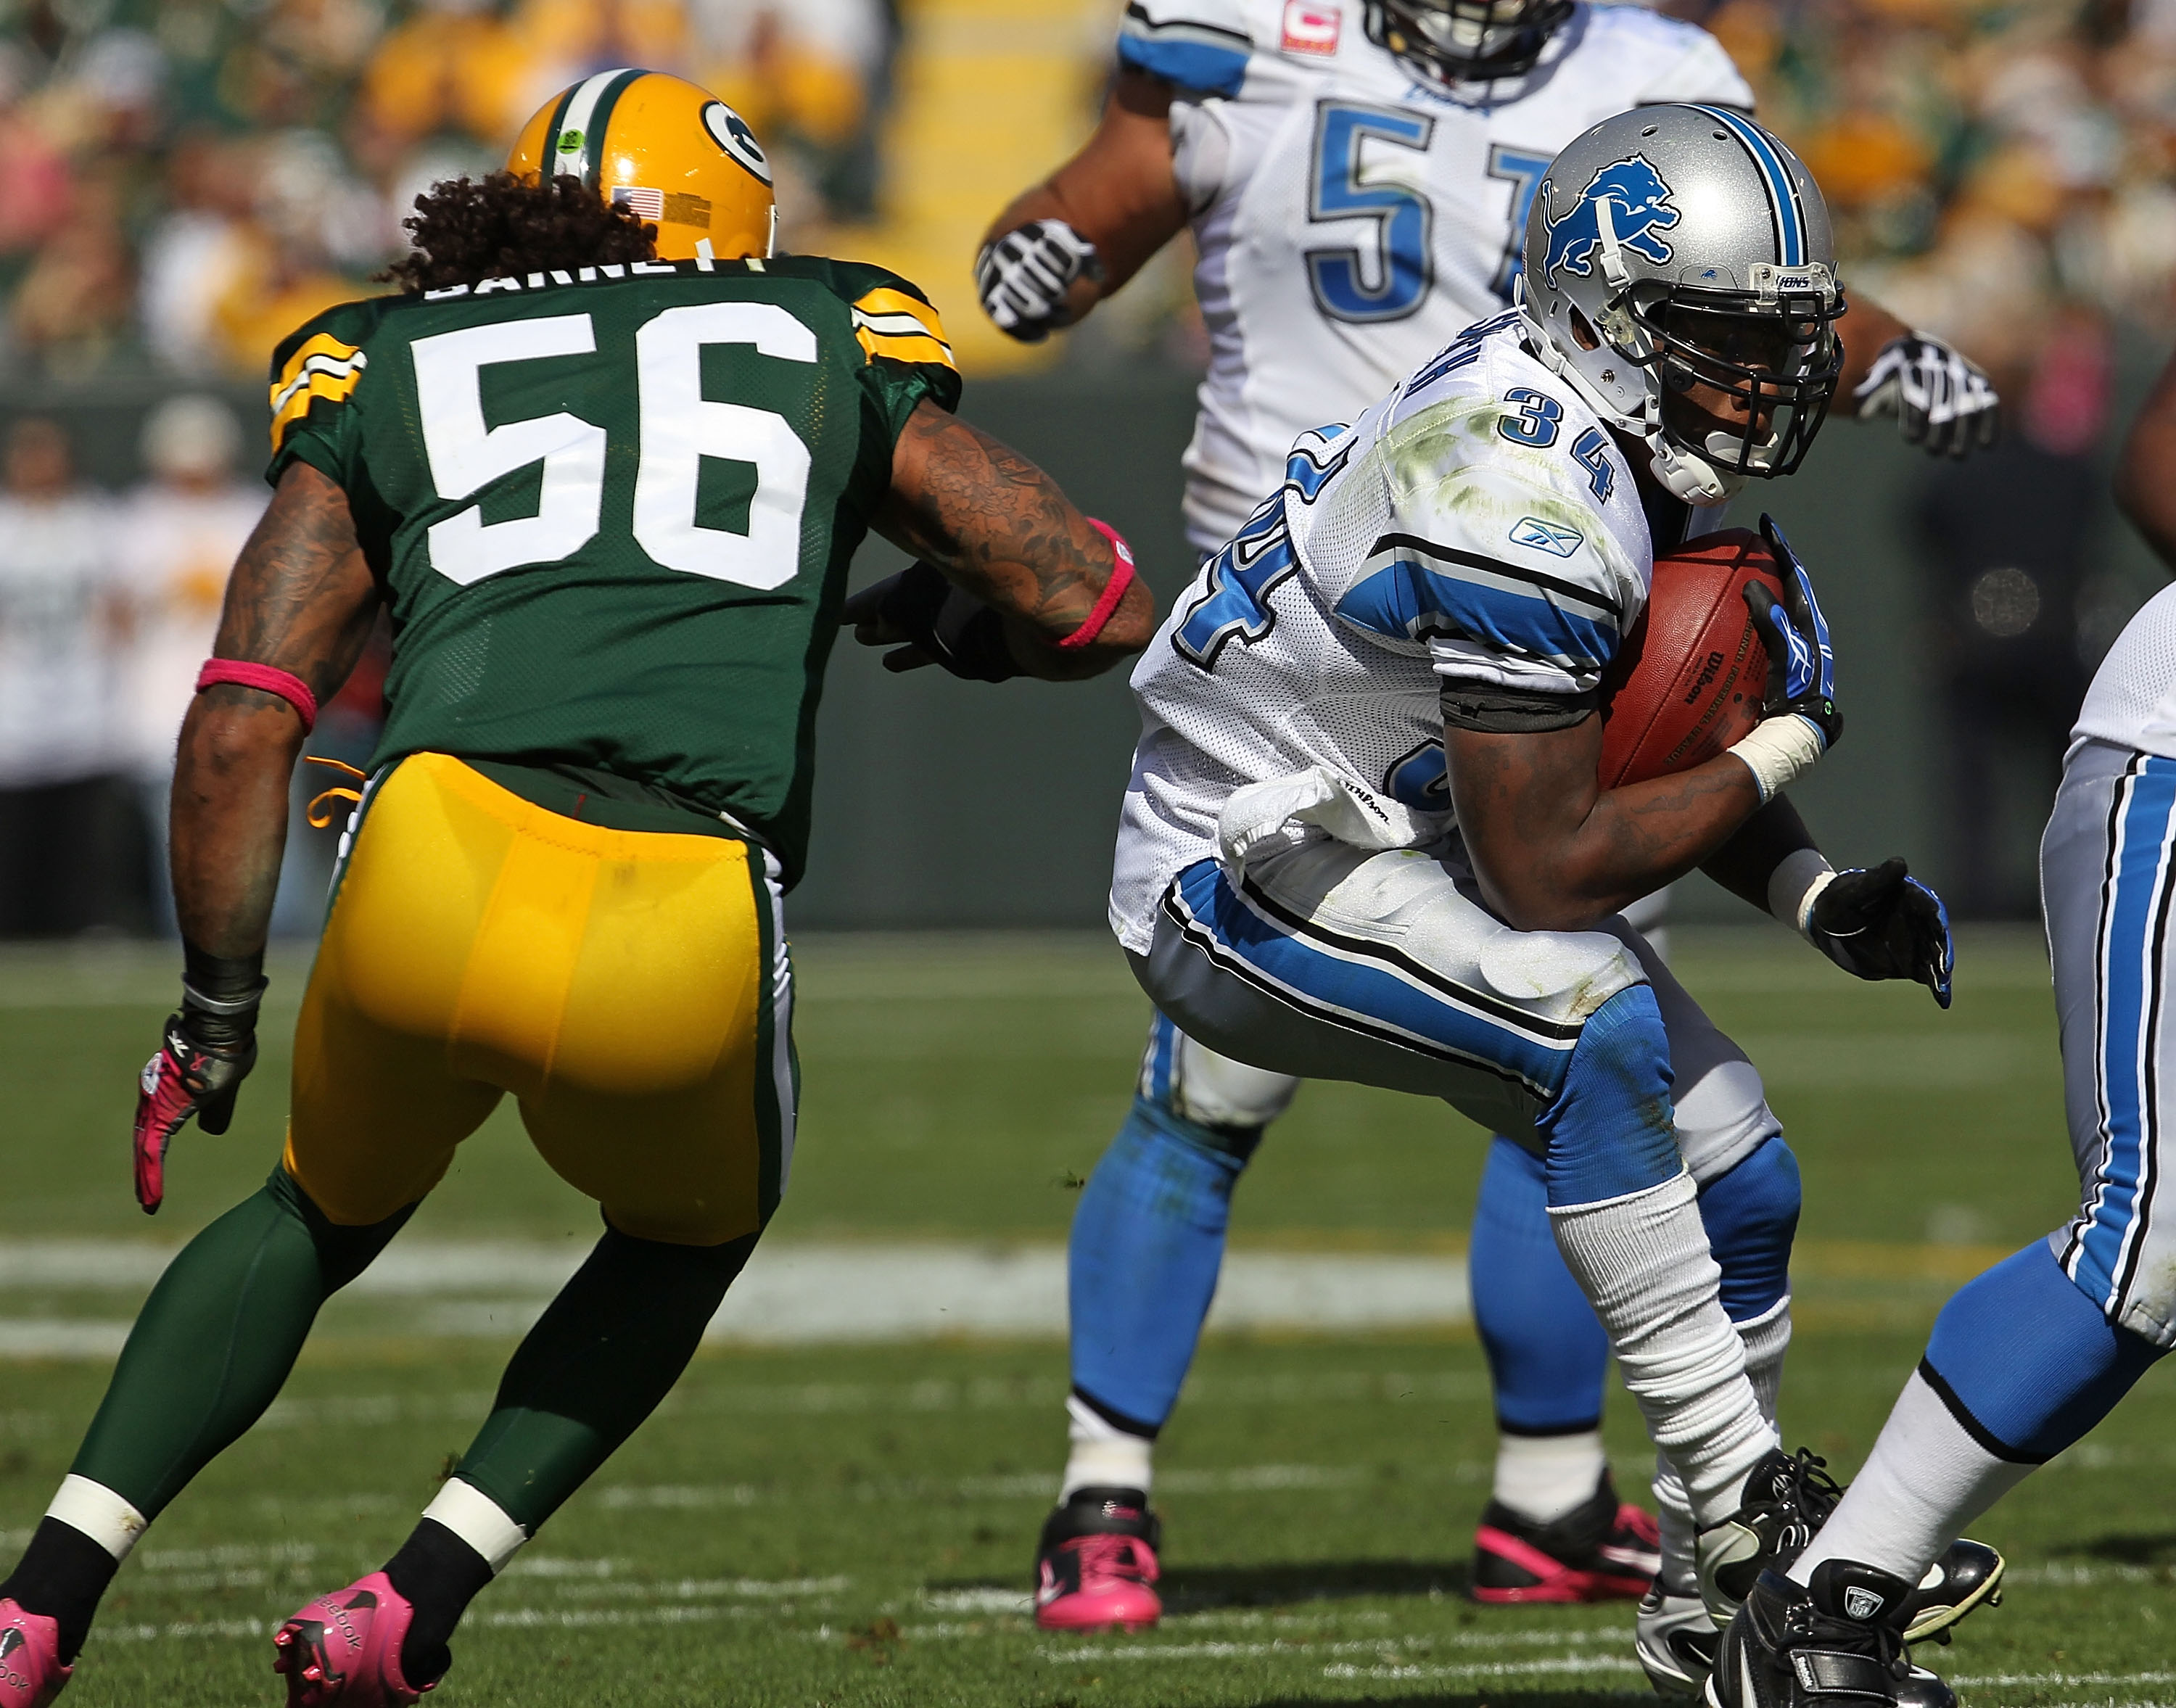 GREEN BAY, WI - OCTOBER 03: Kevin Smith #34 of the Detroit Lions tries to run past Nick Barnett #56 of the Green Bay Packers at Lambeau Field on October 3, 2010 in Green Bay, Wisconsin. The Packers defeated the Lions 28-26. (Photo by Jonathan Daniel/Getty